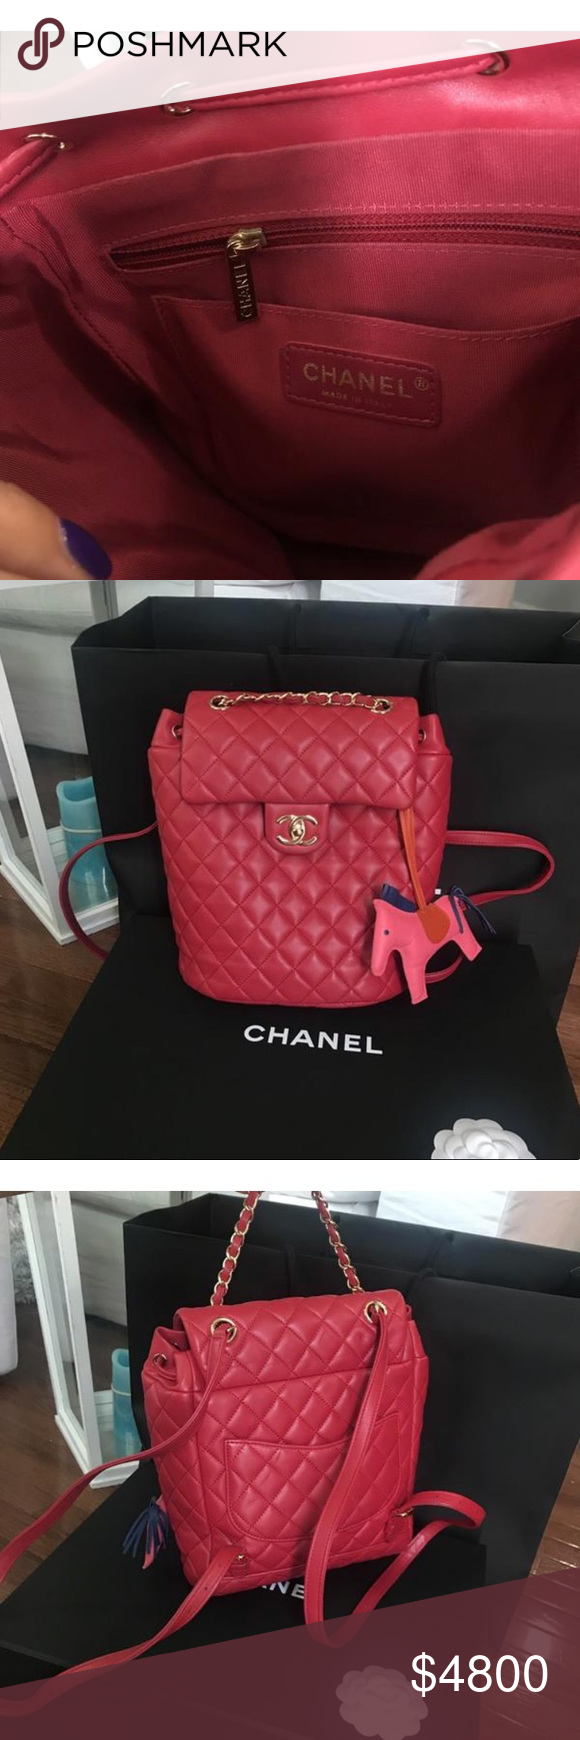 74293f3d79fd Chanel quilted Lambskin Urban spirit backpack Sold out everywhere. CHANEL  Lambskin Quilted Small Urban Spirit